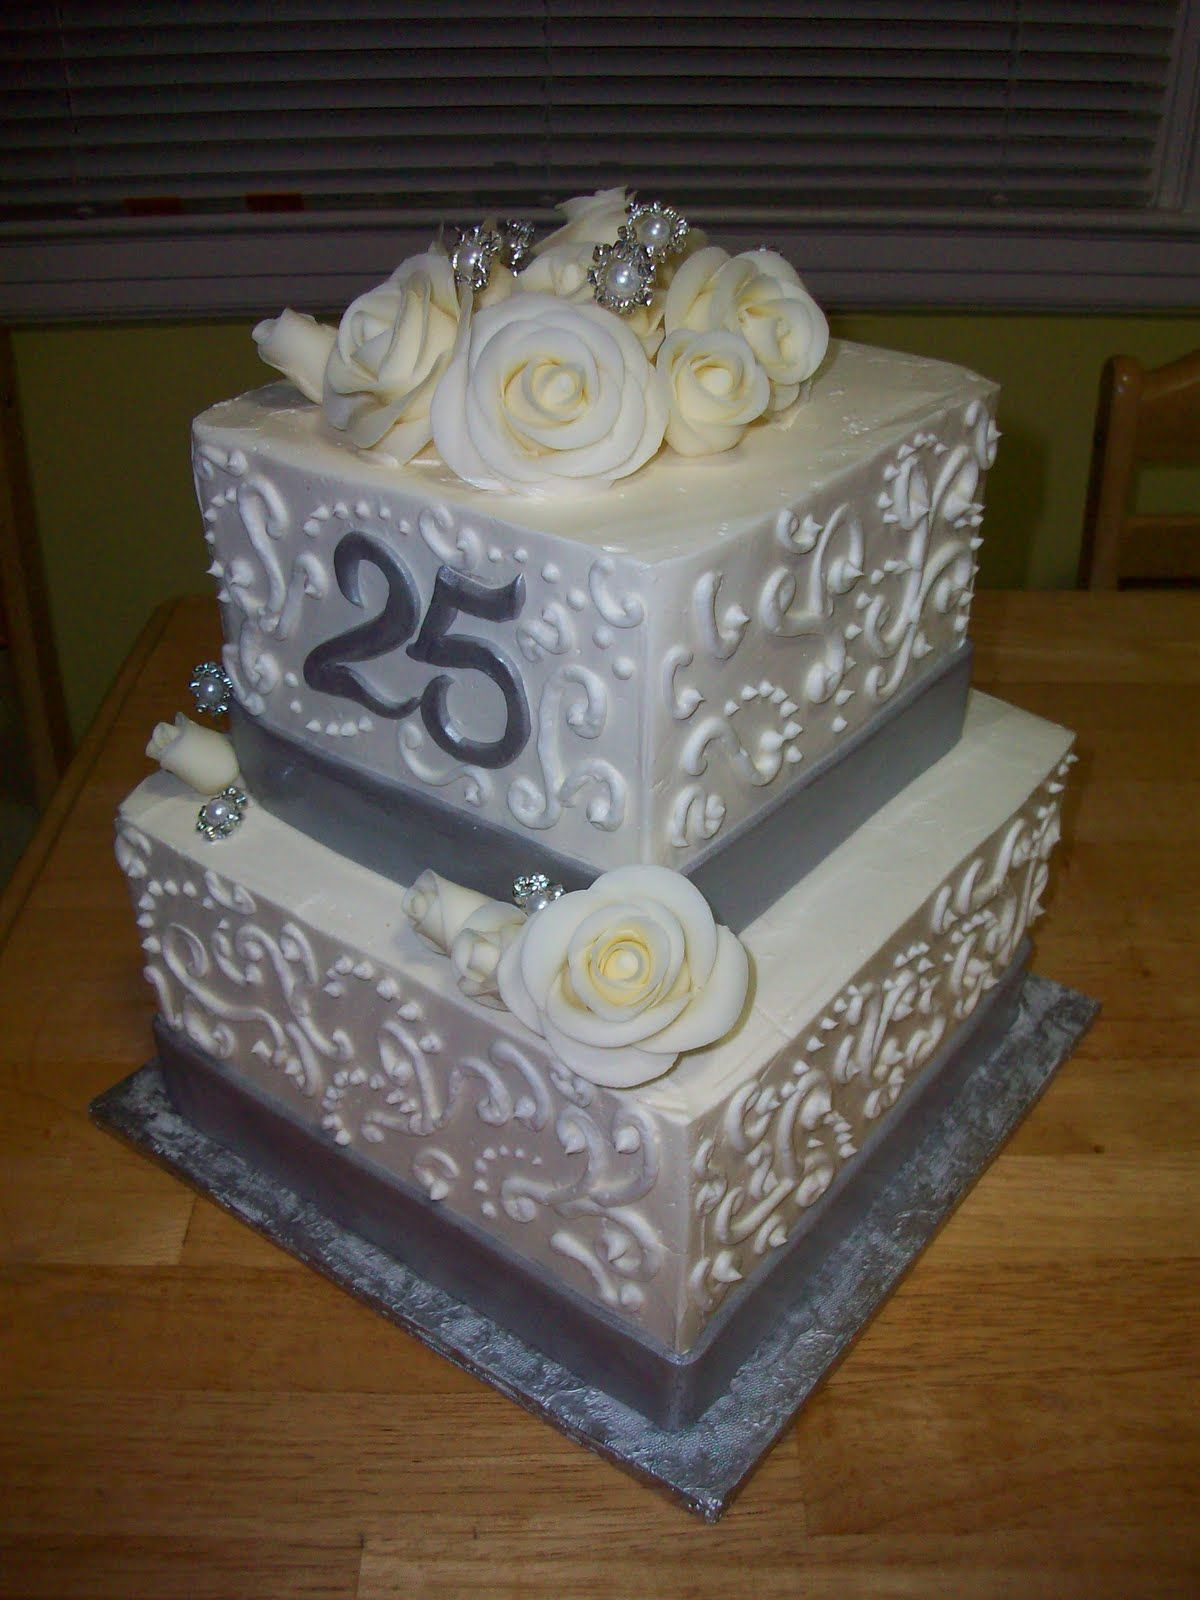 25 anniversary cake - Google Search Cake Ideas ...